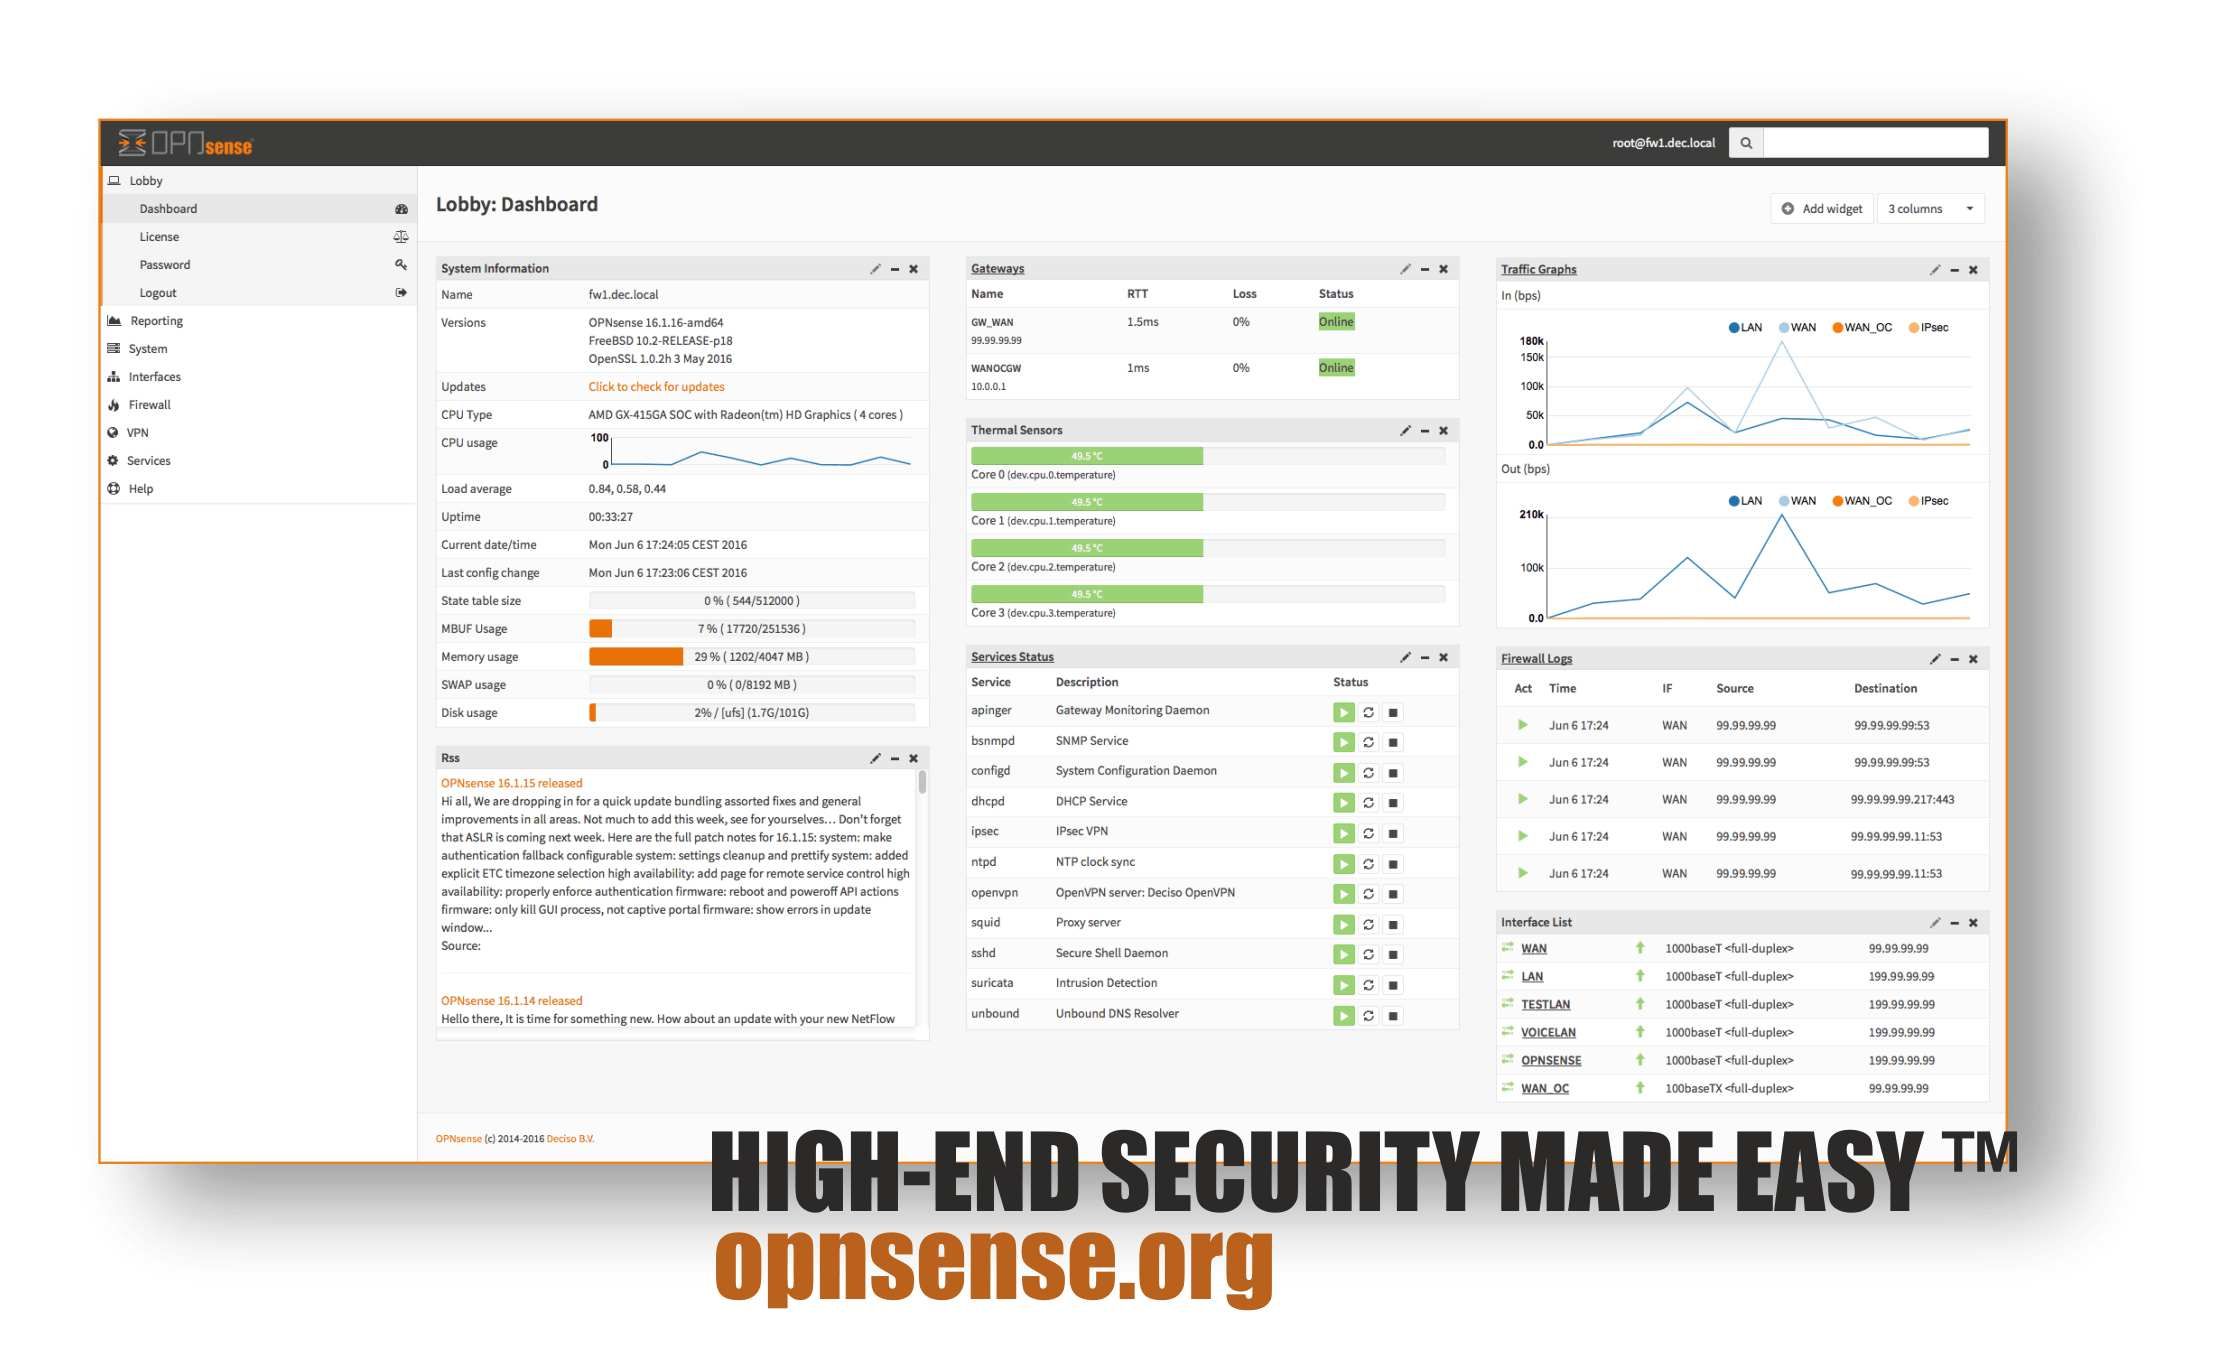 OPNsense 16 1 16 released - OPNsense, Your Next Open Source Firewall